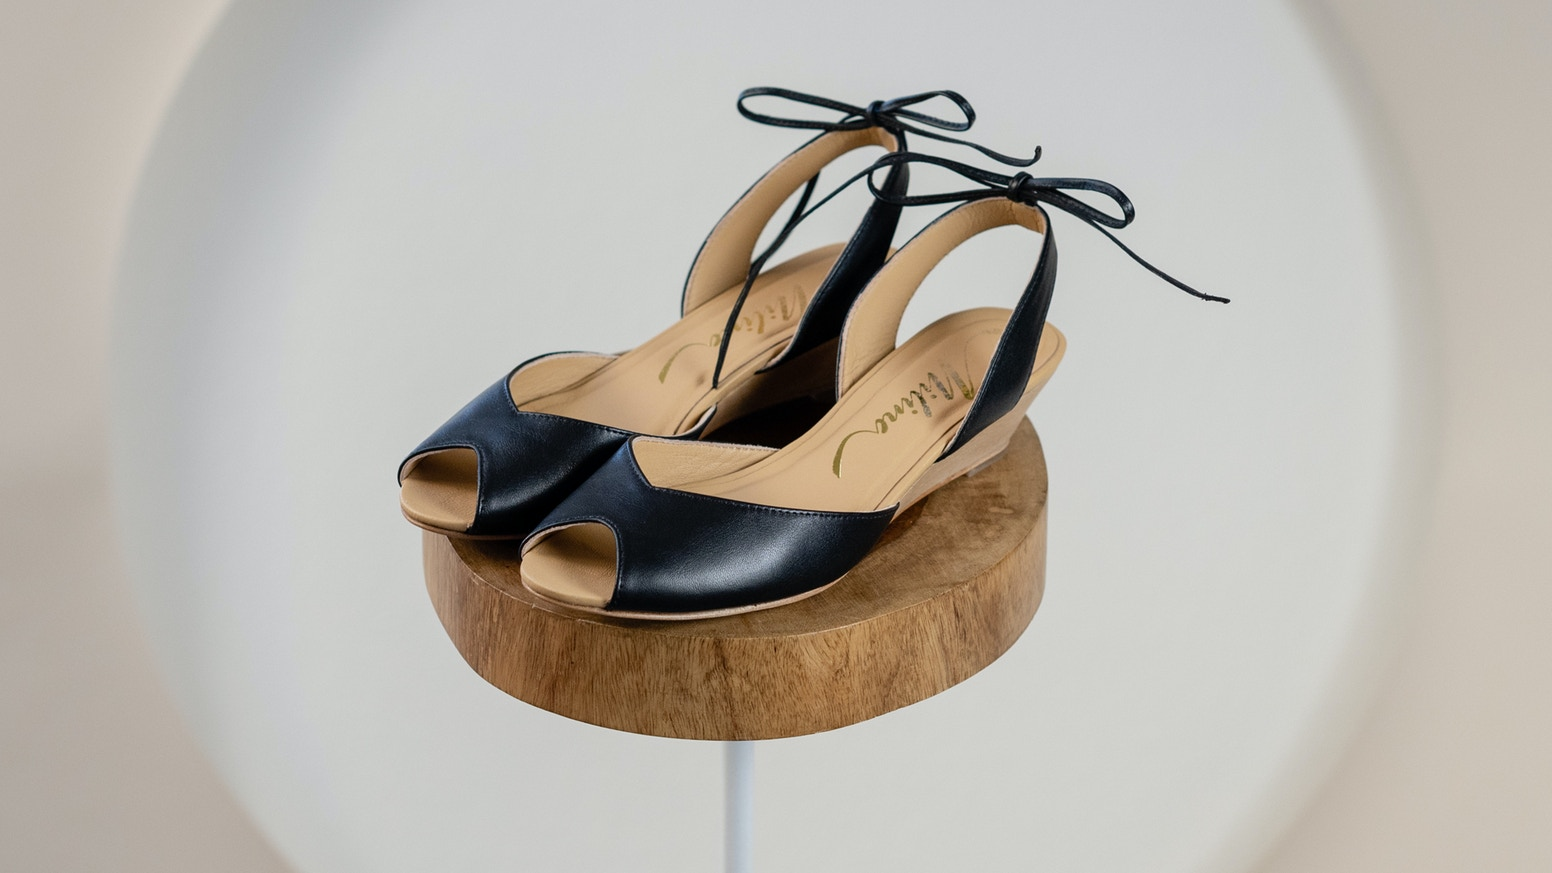 sustainably made leather and wood wedge sandal designed to be universally flattering, versatile and comfortable